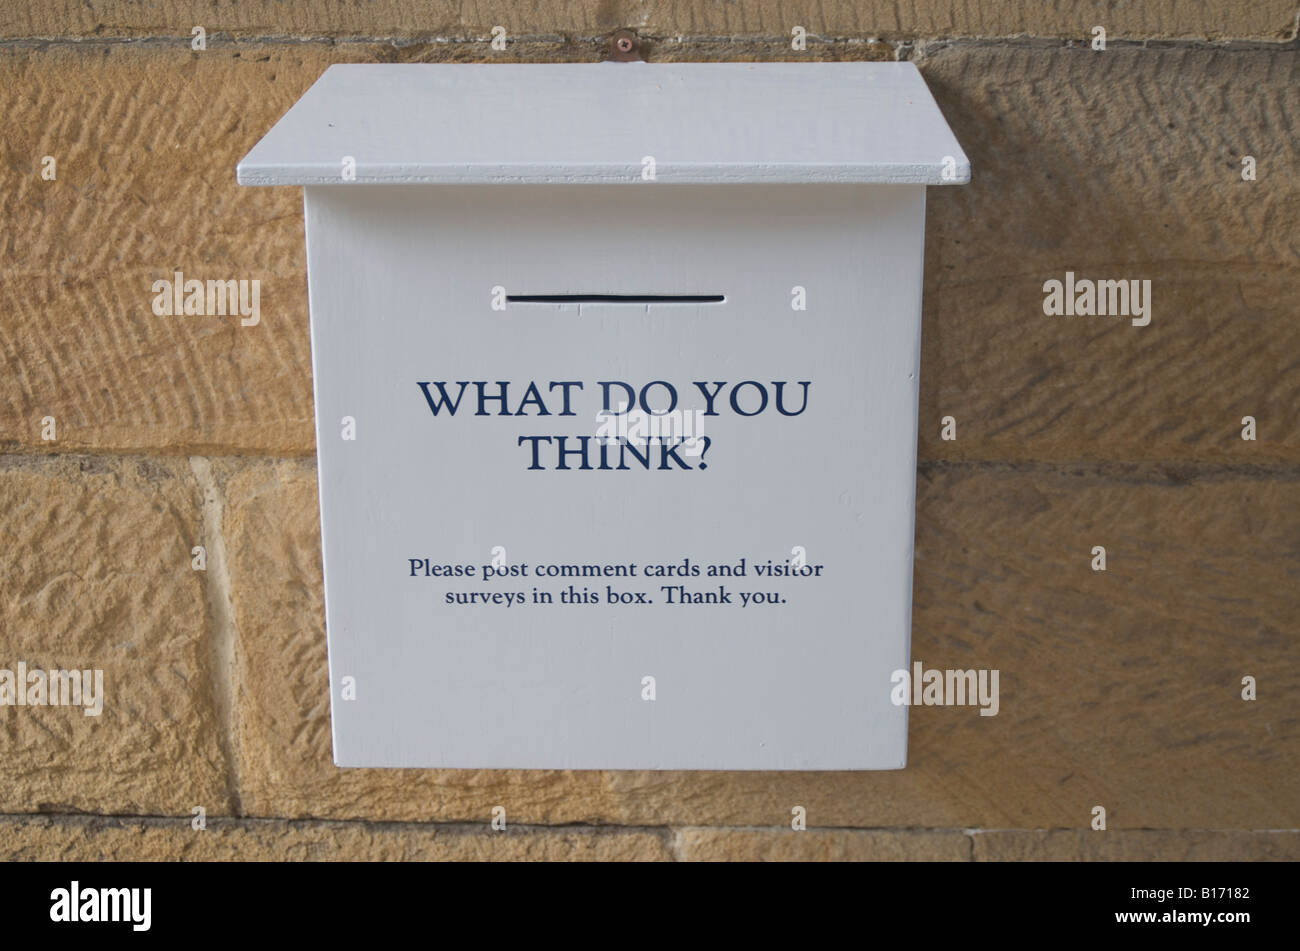 'What do you think' - Comments and suggestion box at English Stately Home, England,UK Stock Photo